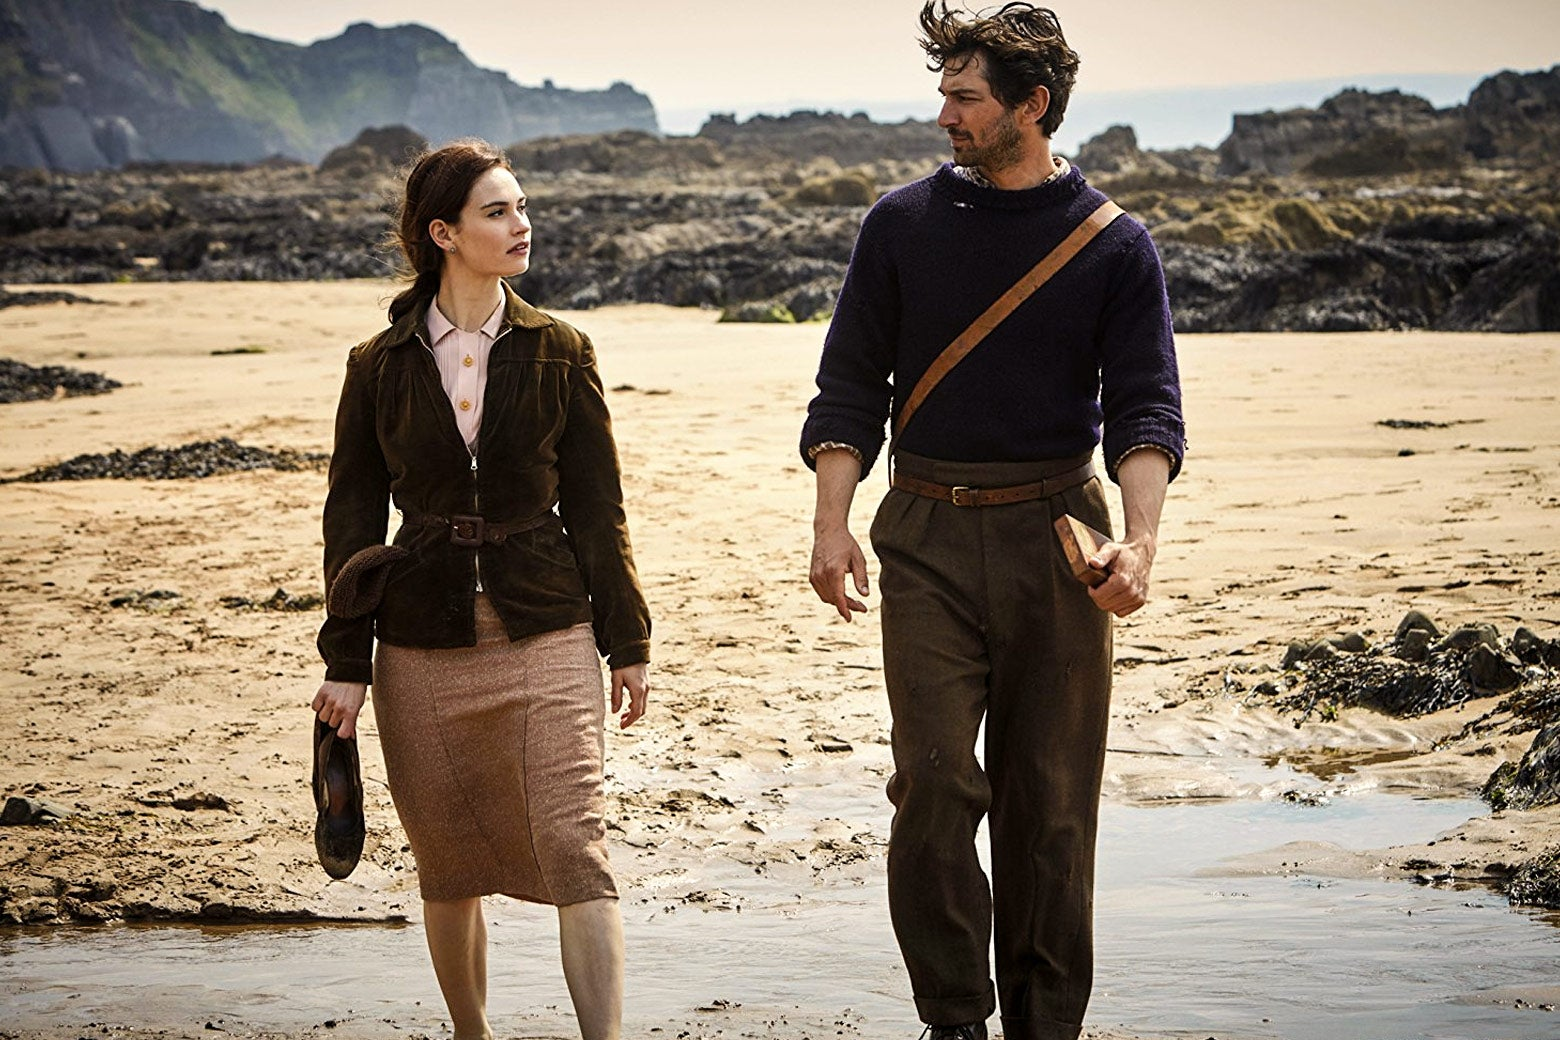 Lily James and Michiel Huisman walk on the beach in The Guernsey Literary and Potato Peel Society.